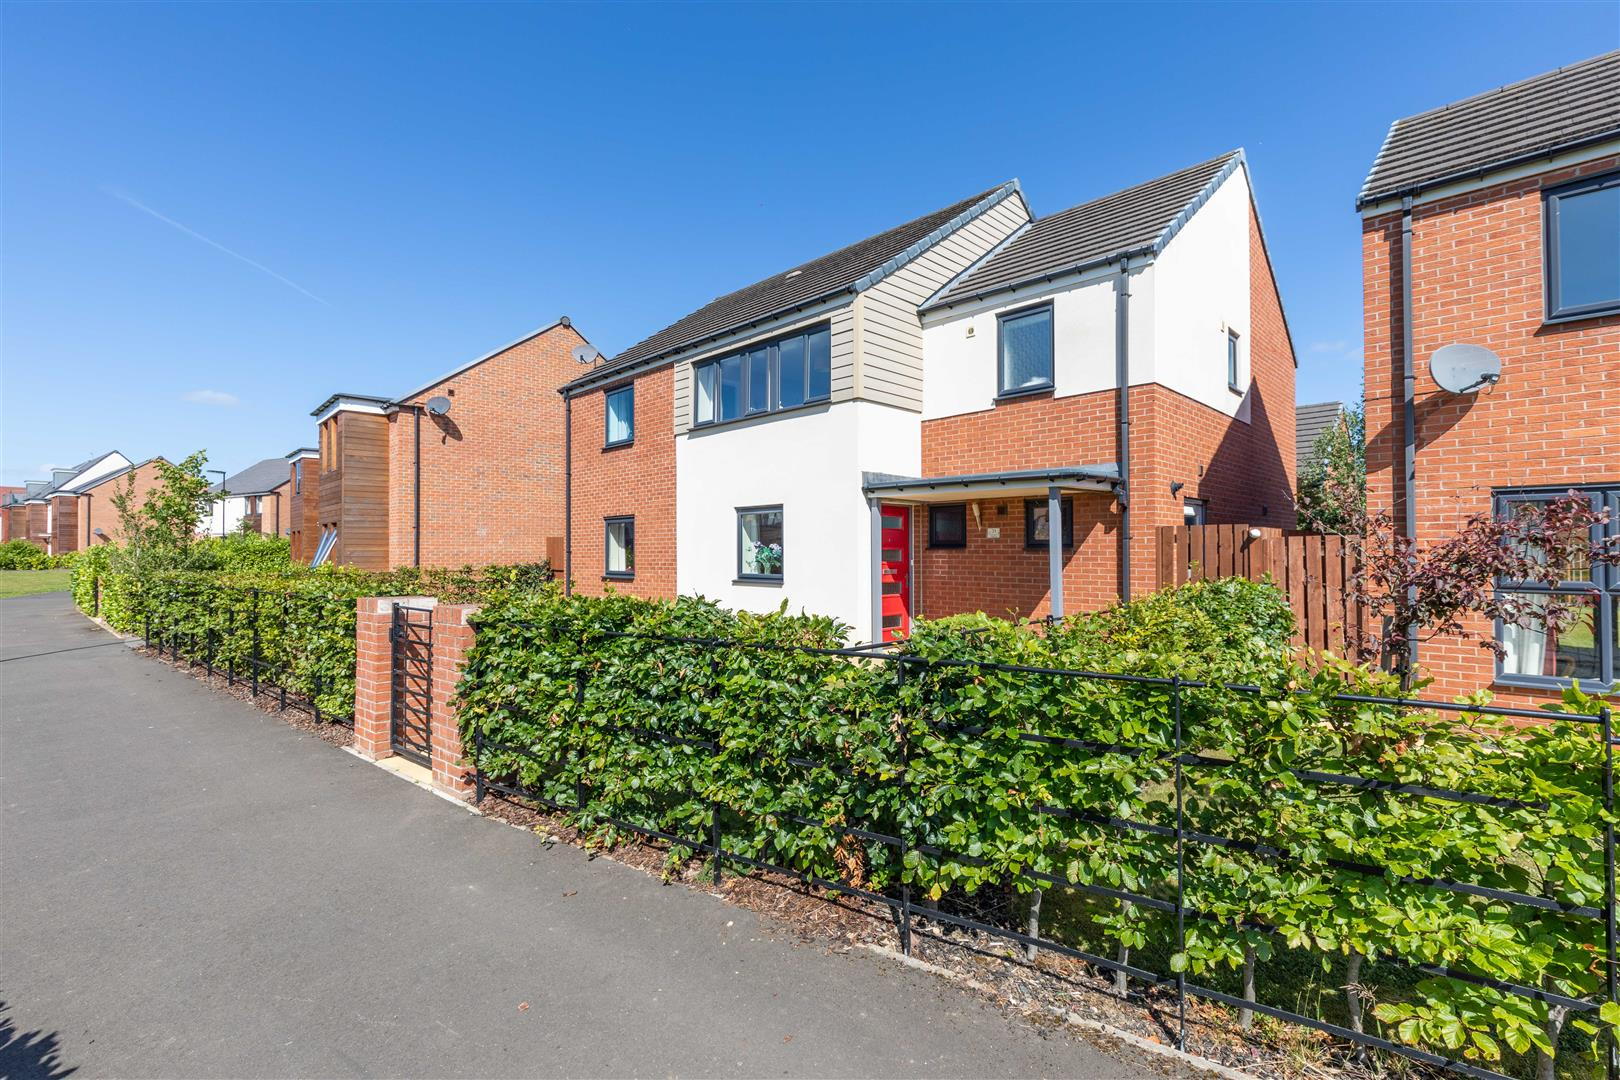 4 bed detached house for sale in Newcastle Upon Tyne, NE13 9AW - Property Image 1